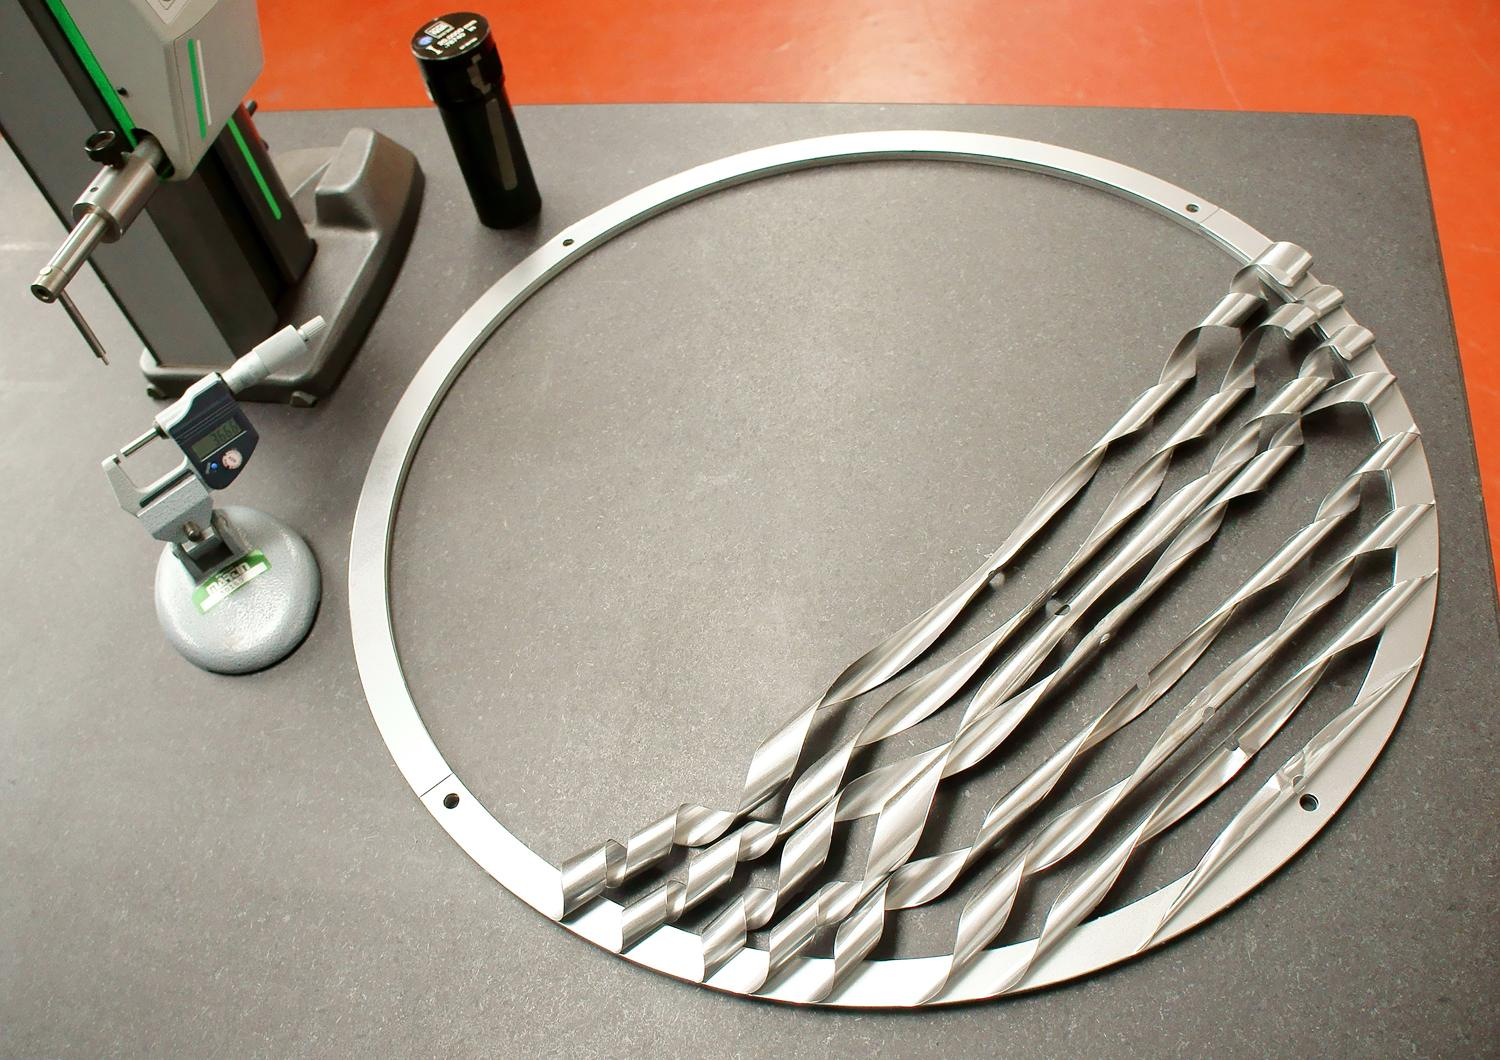 For tolerance compensation in the installation of wind turbine gear units, shim specialist Martin offers an exceptionally large steel ring with 630mm diameter